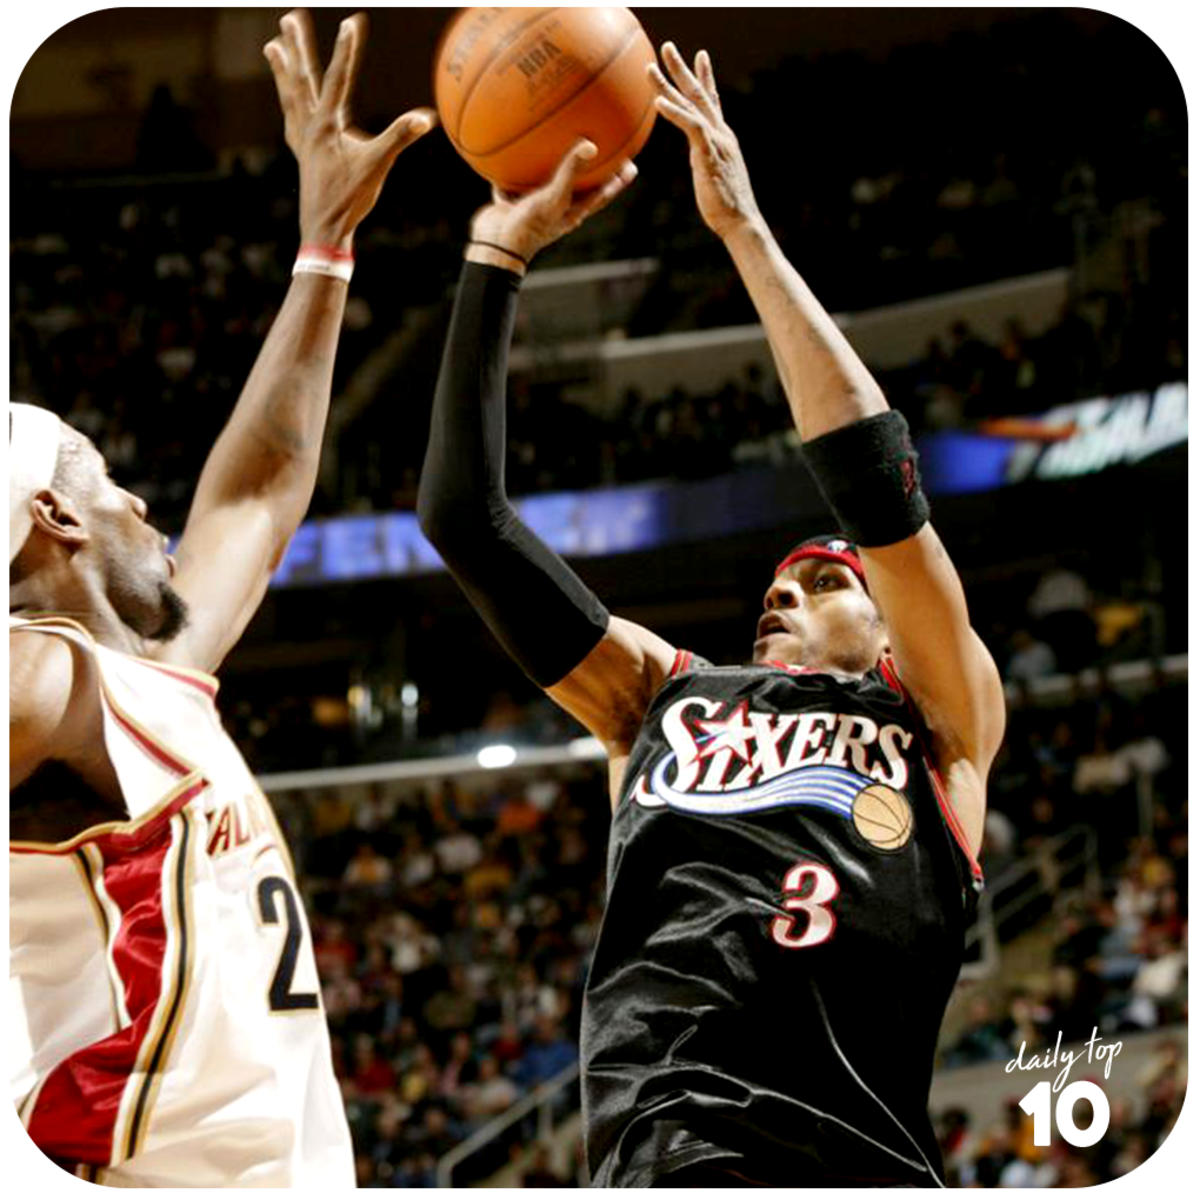 Allen Iverson making a jumpshot.